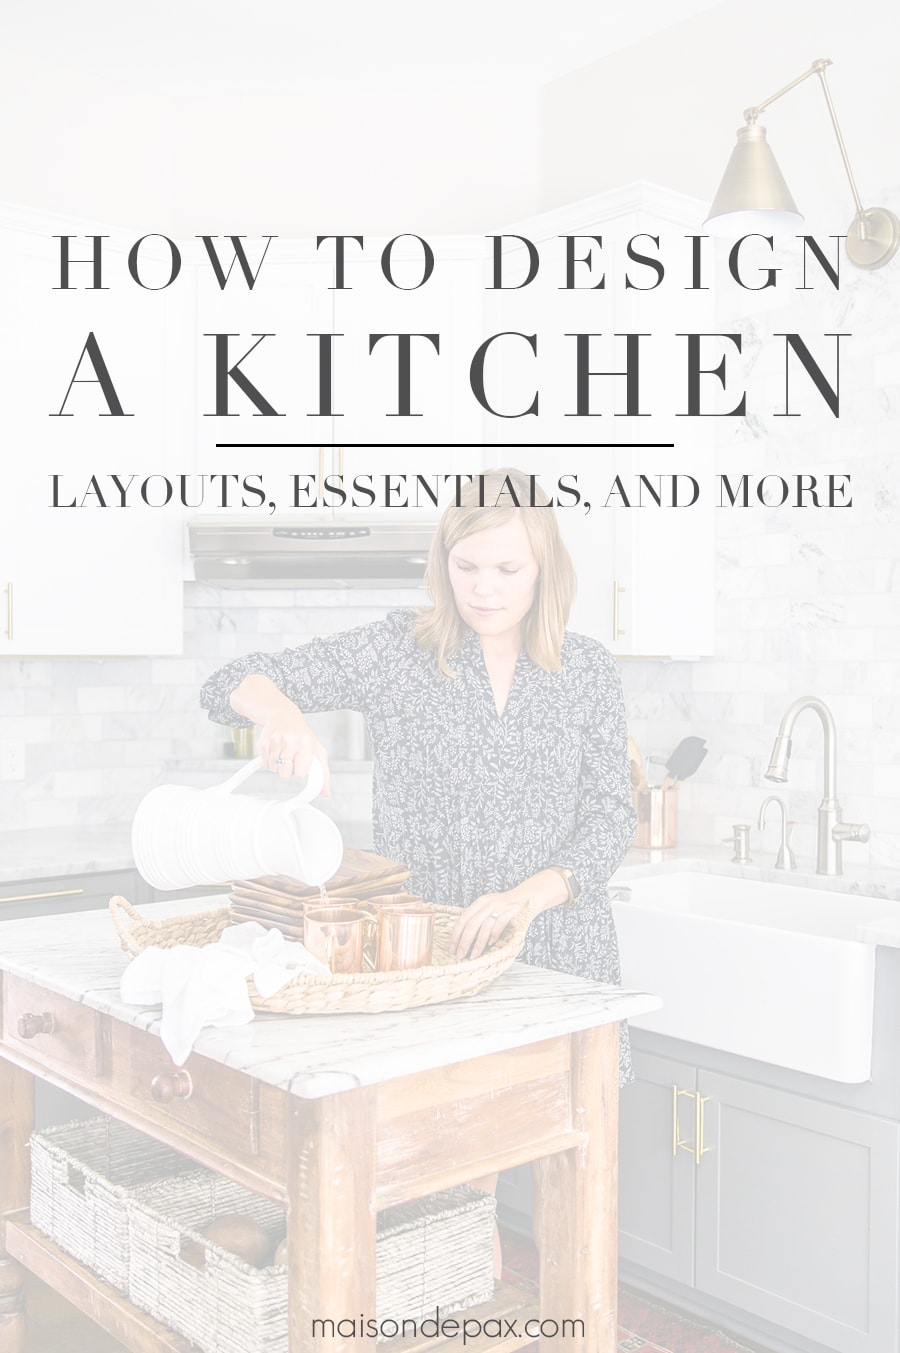 beautiful kitchen with text overlay that reads: how to design a kitchen